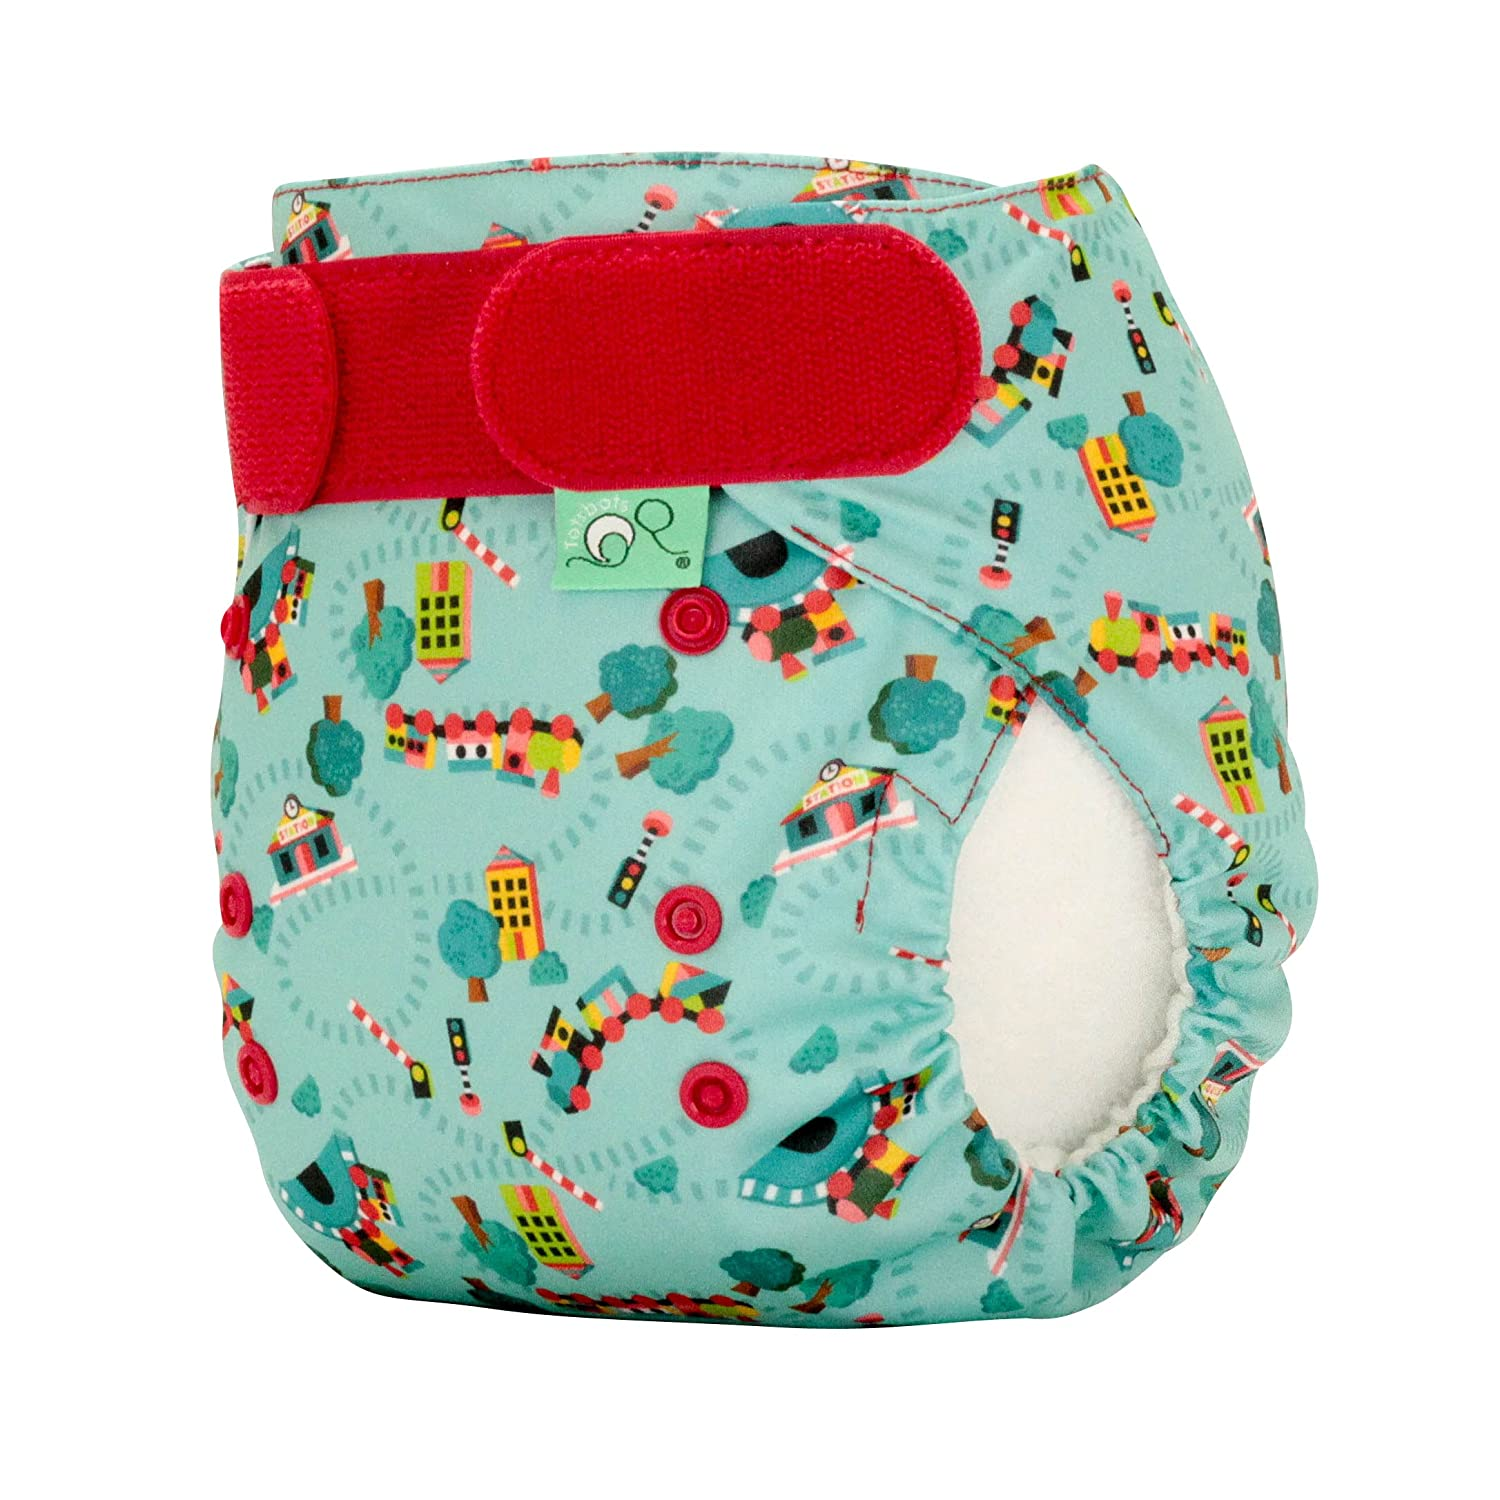 TotsBots EasyFit STAR Choo Choo Reusable Washable Nappy - One Size Tots Bots Limited 5060510760486